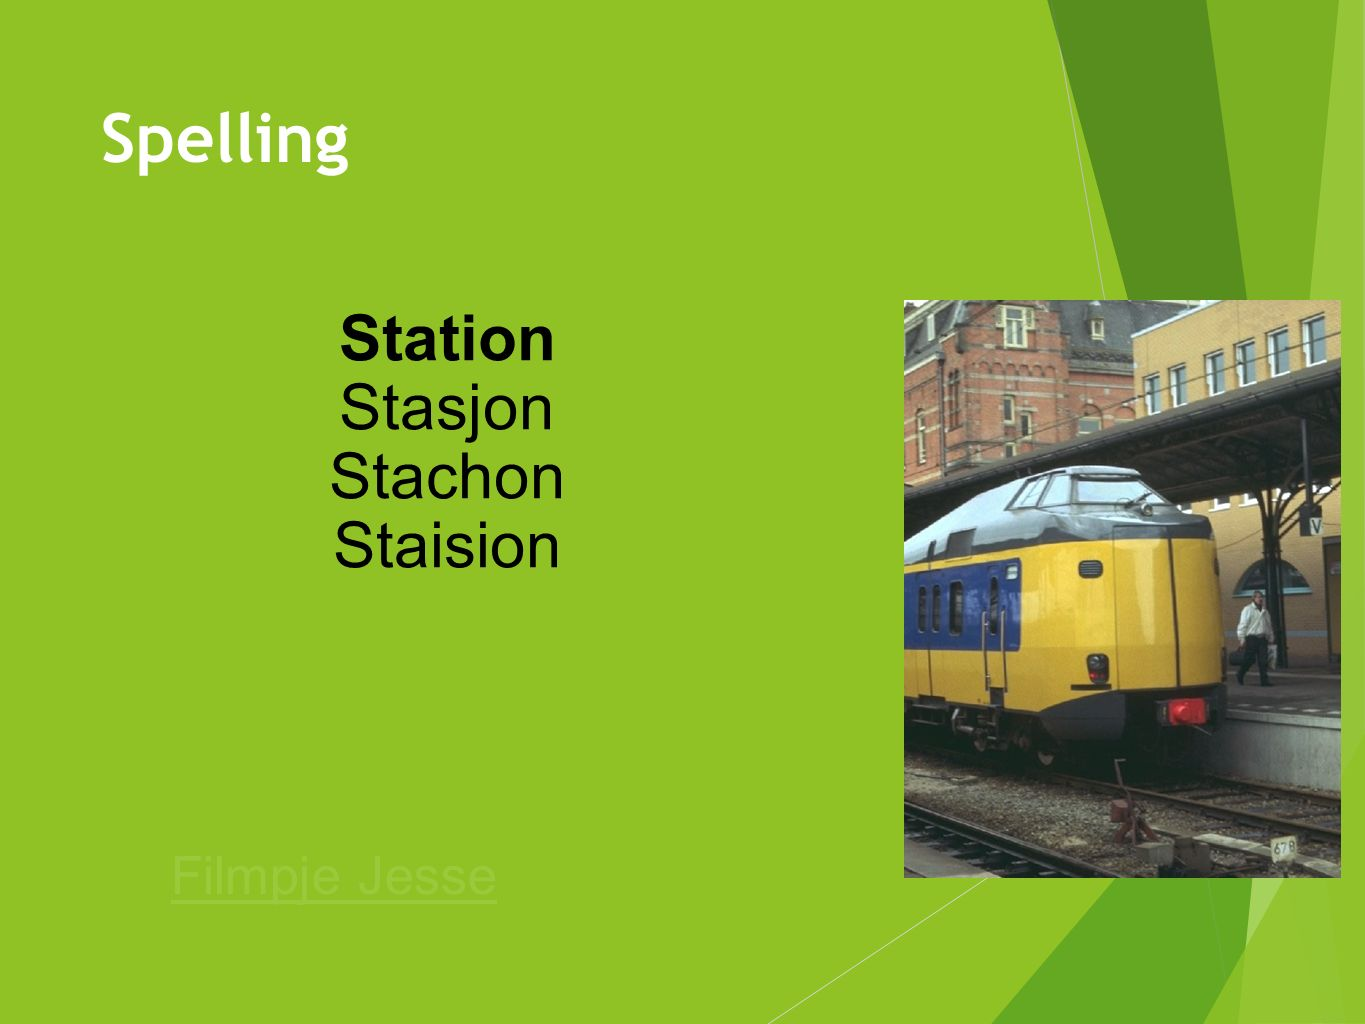 Station Stasjon Stachon Staision